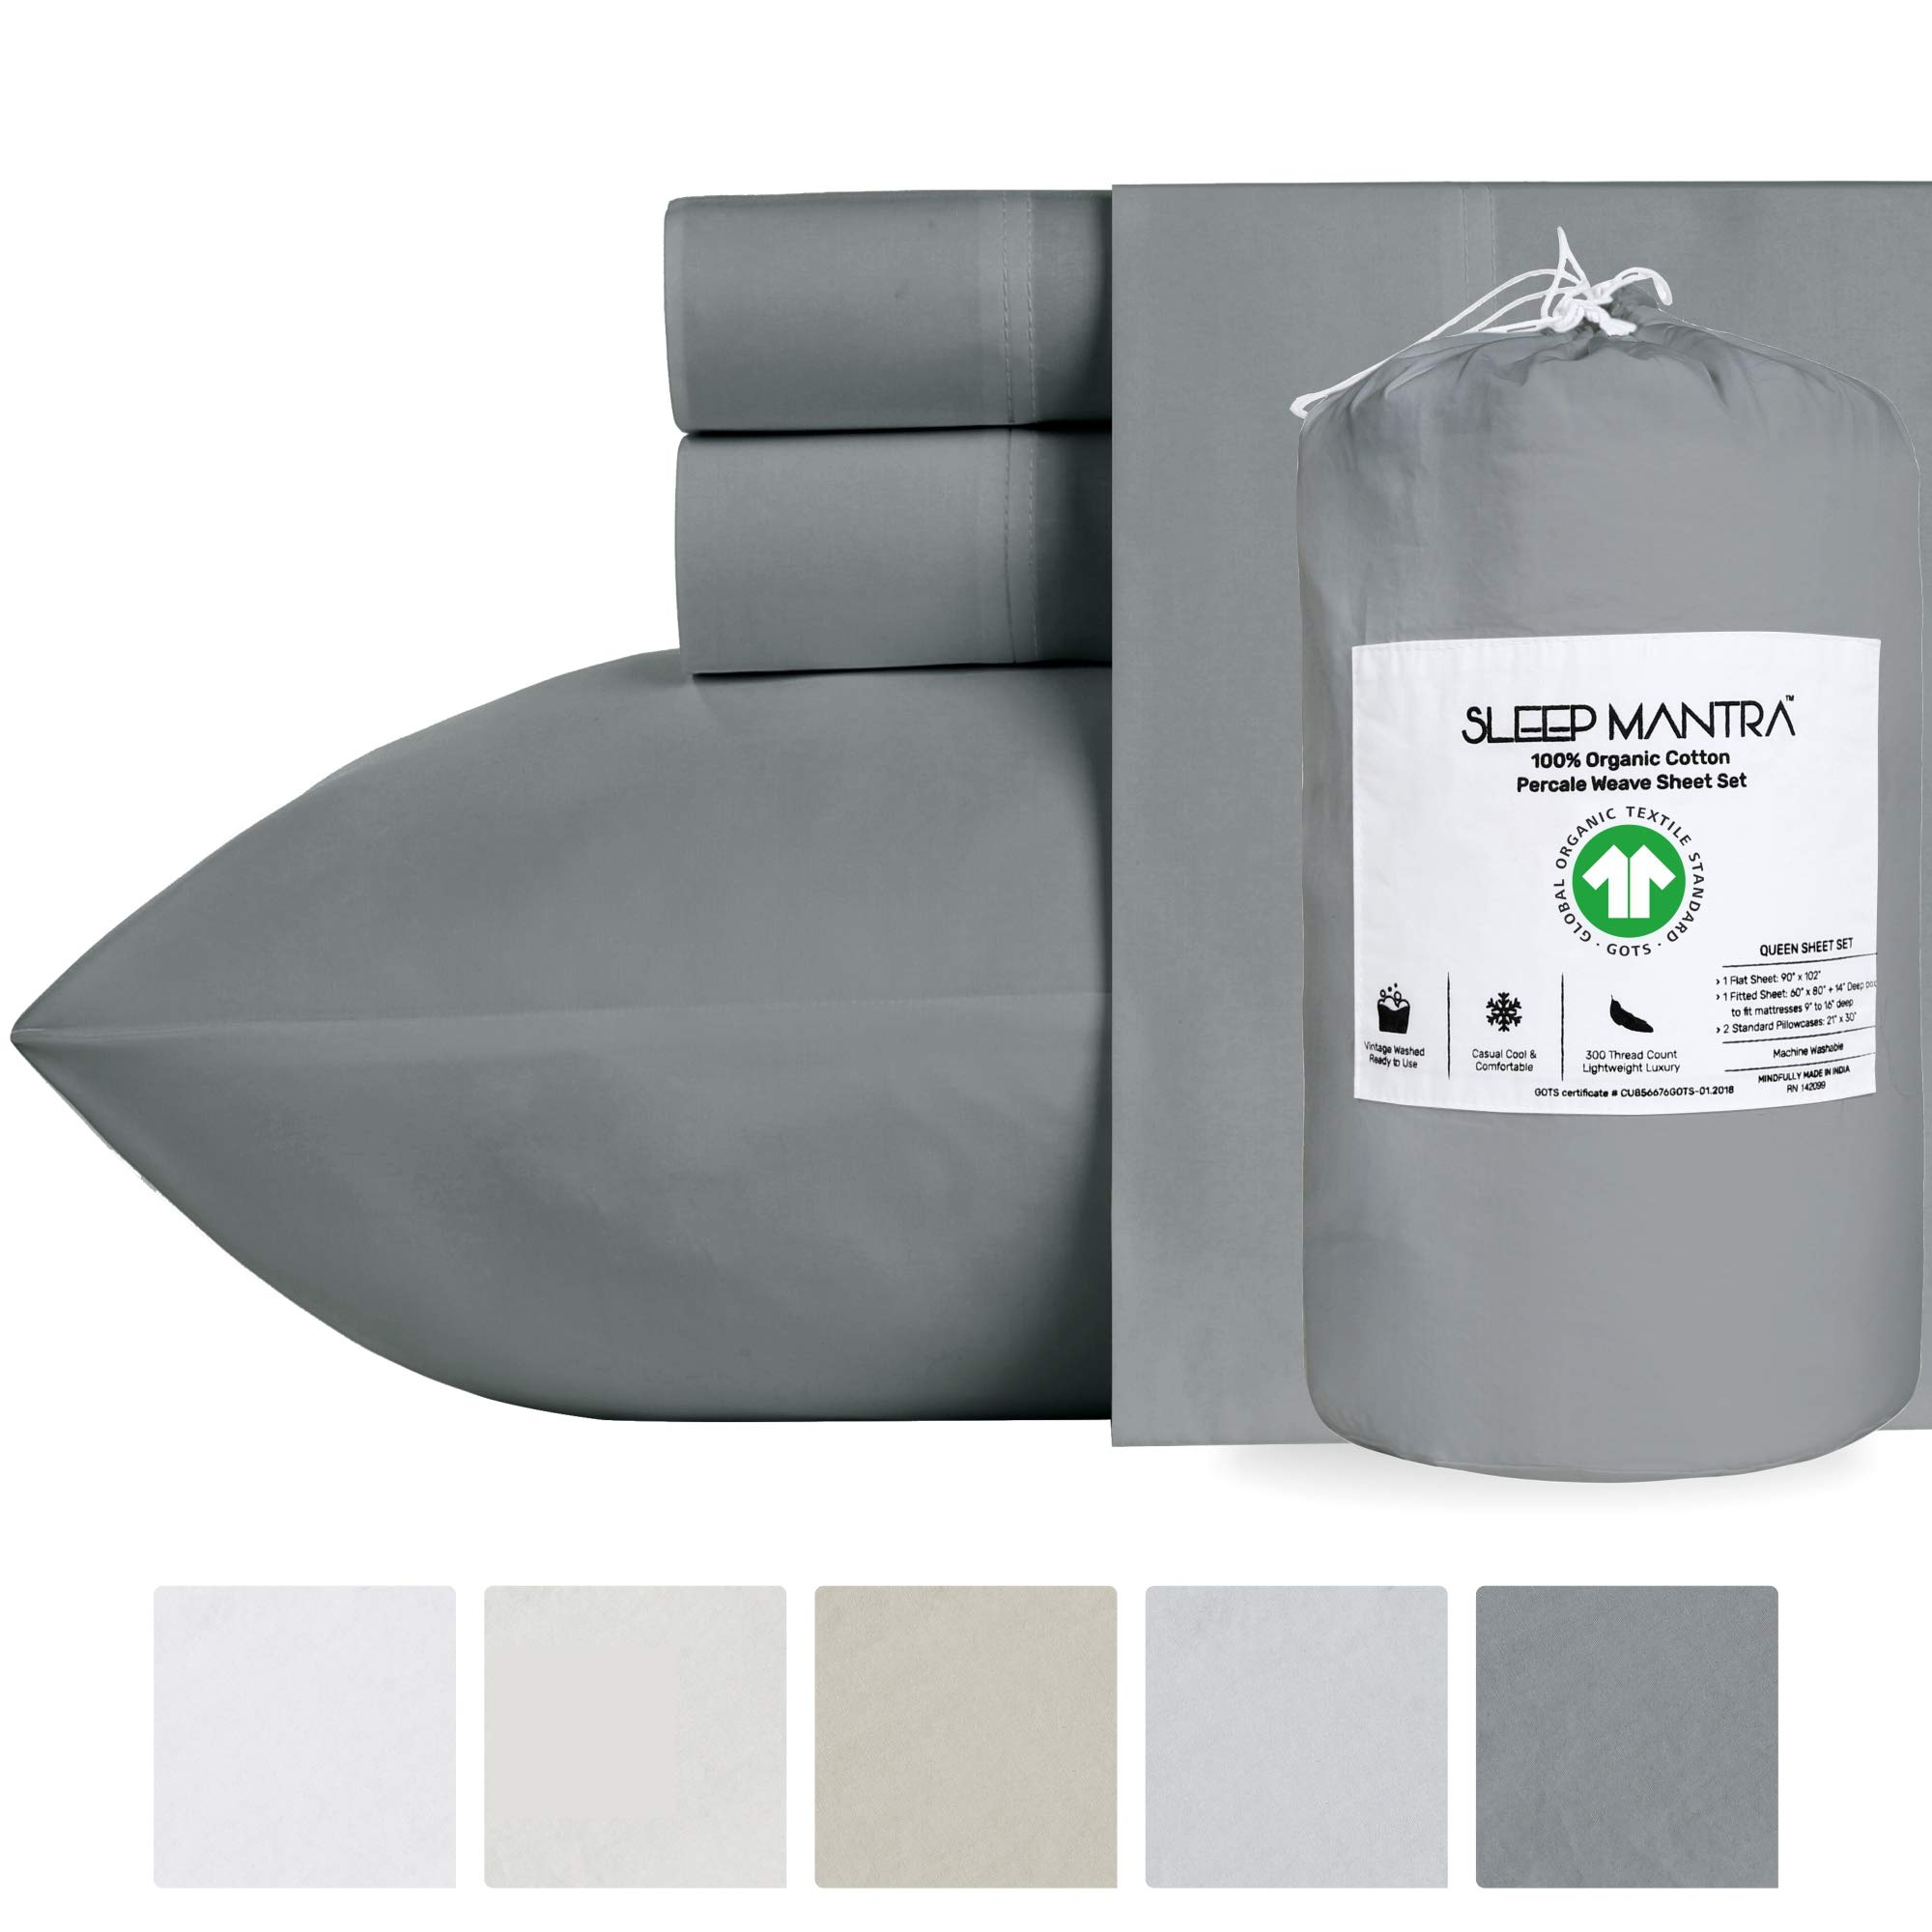 California-King Sheet Set Dark Grey - 100% Organic GOTS Certified Natural Cotton Sheets 4-Piece Bedding, Cool Crisp Percale Weave Eco-Friendly Bed Sheets with 14 Inch Deep Pockets